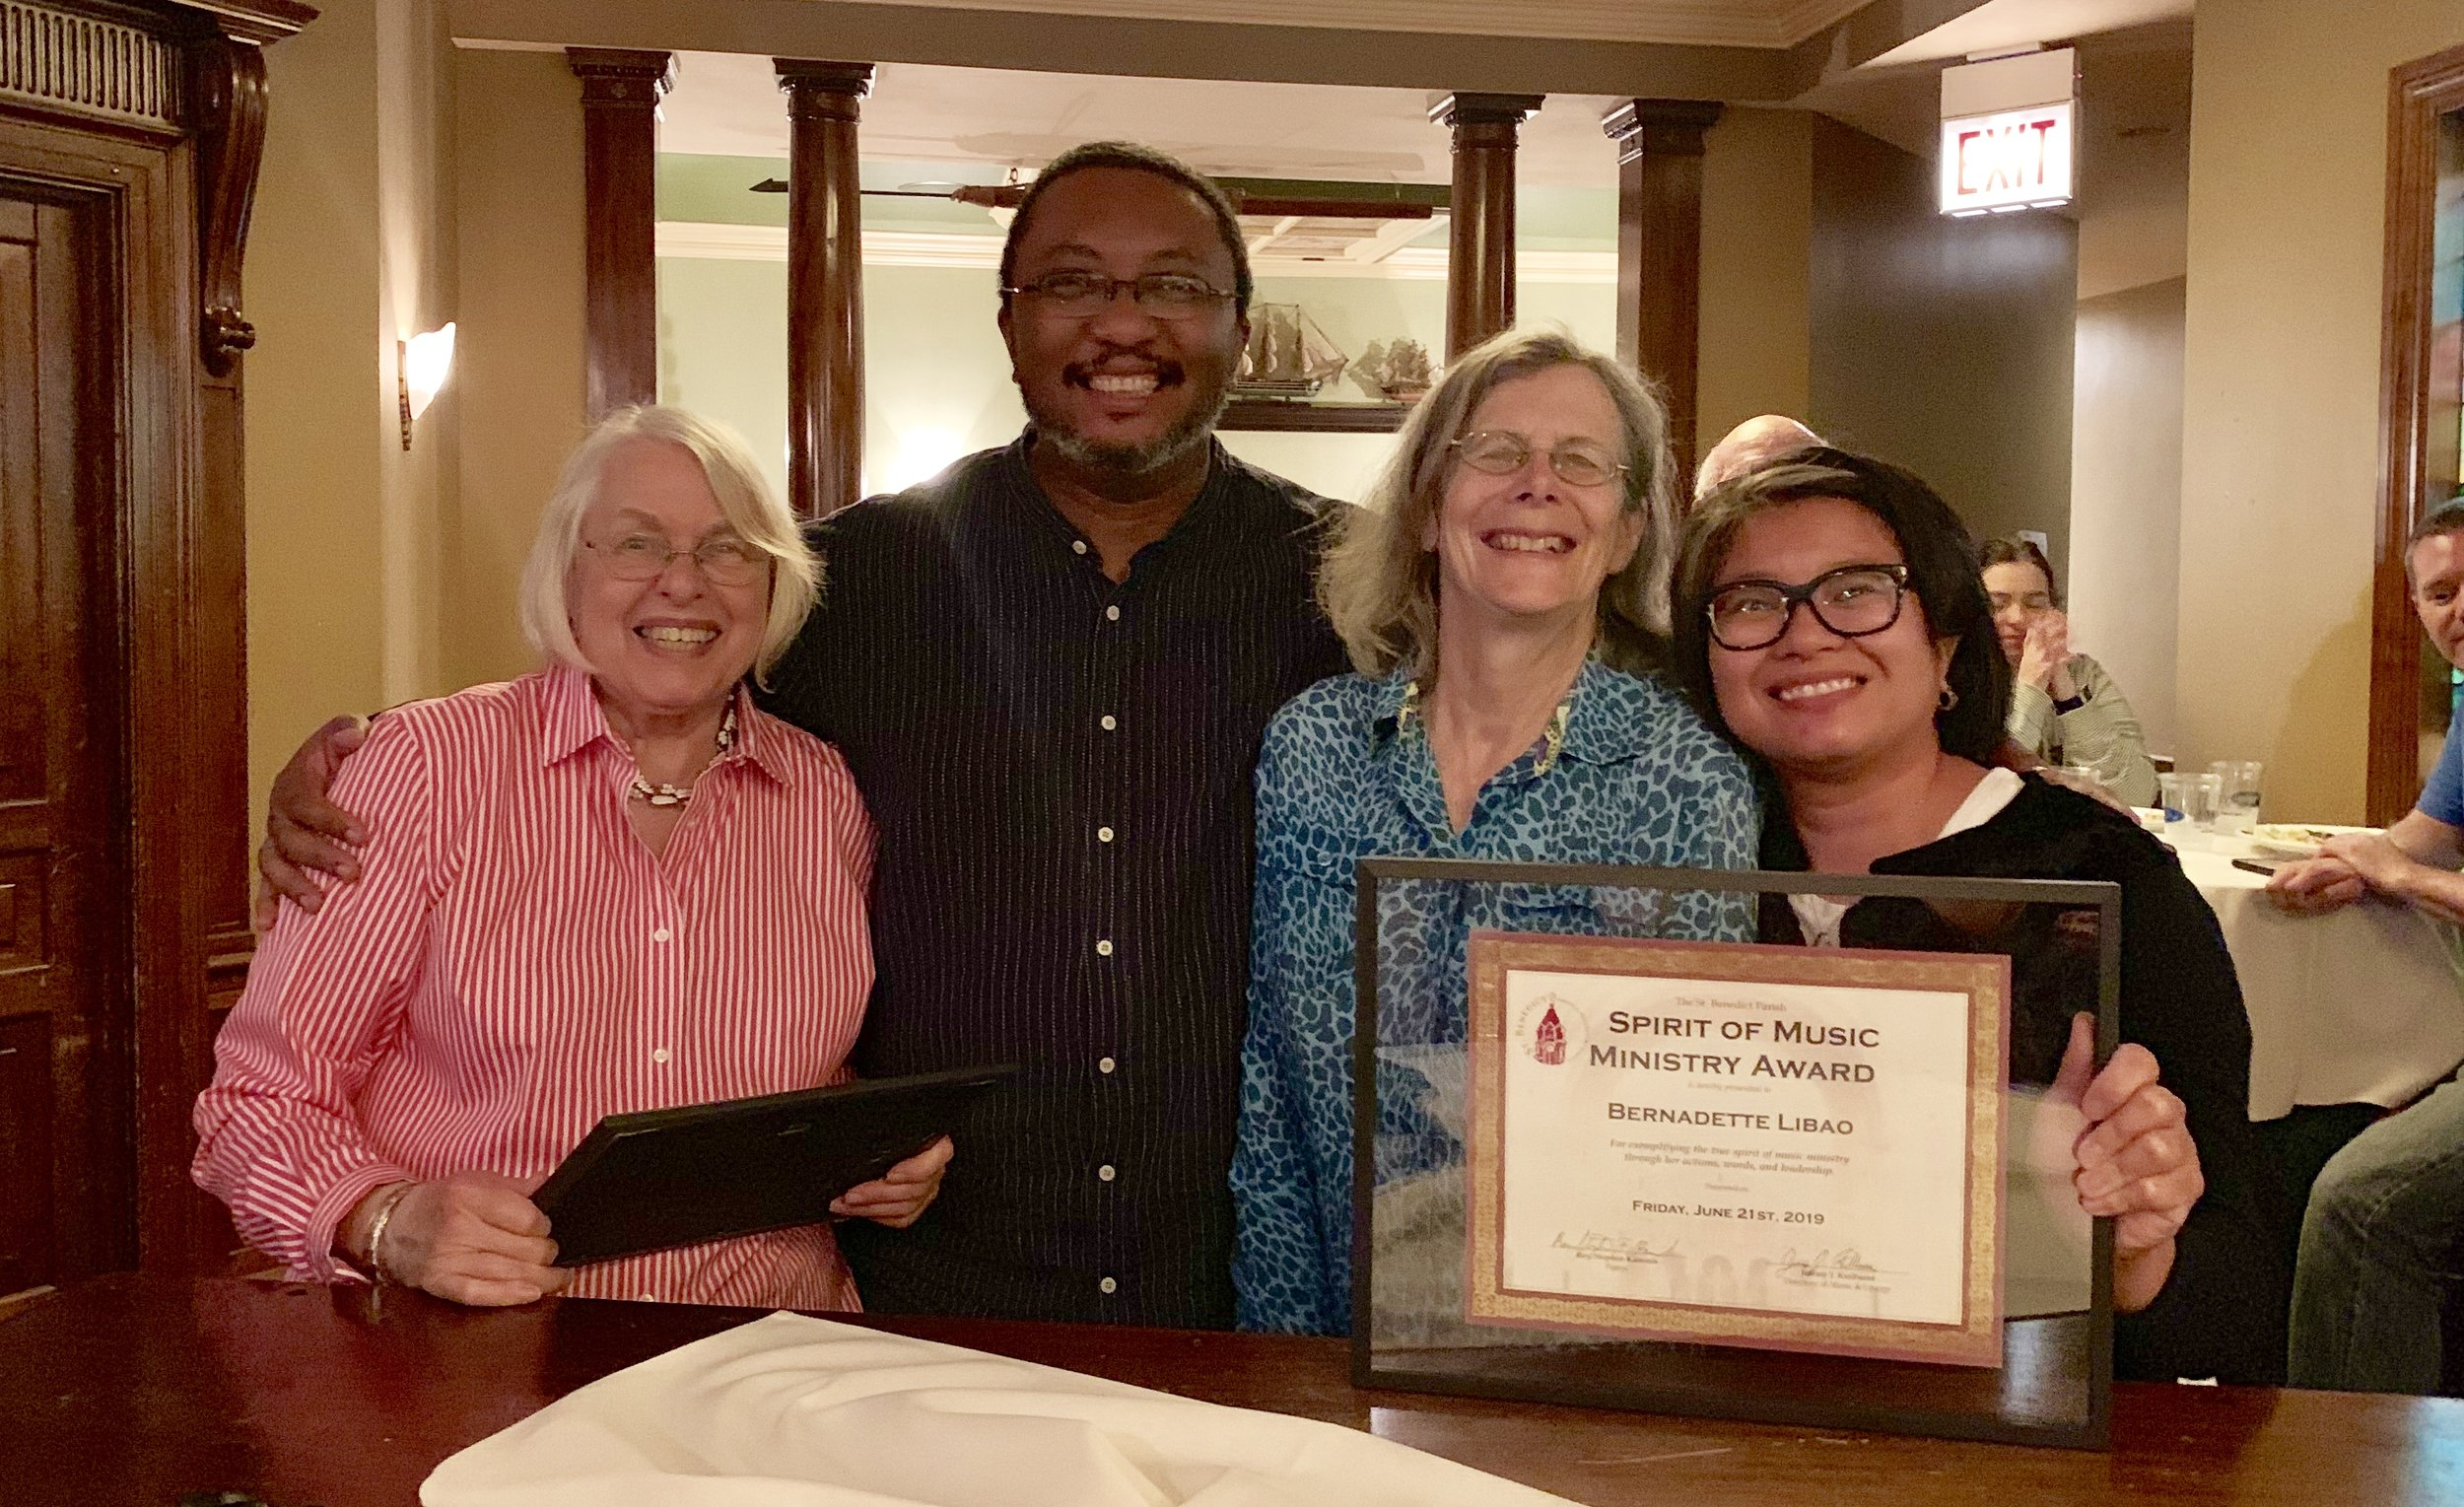 Past and present award winners, left to right: Jeanette Heiner, Collin Hunters, Ann Ryan, Bernie Libao